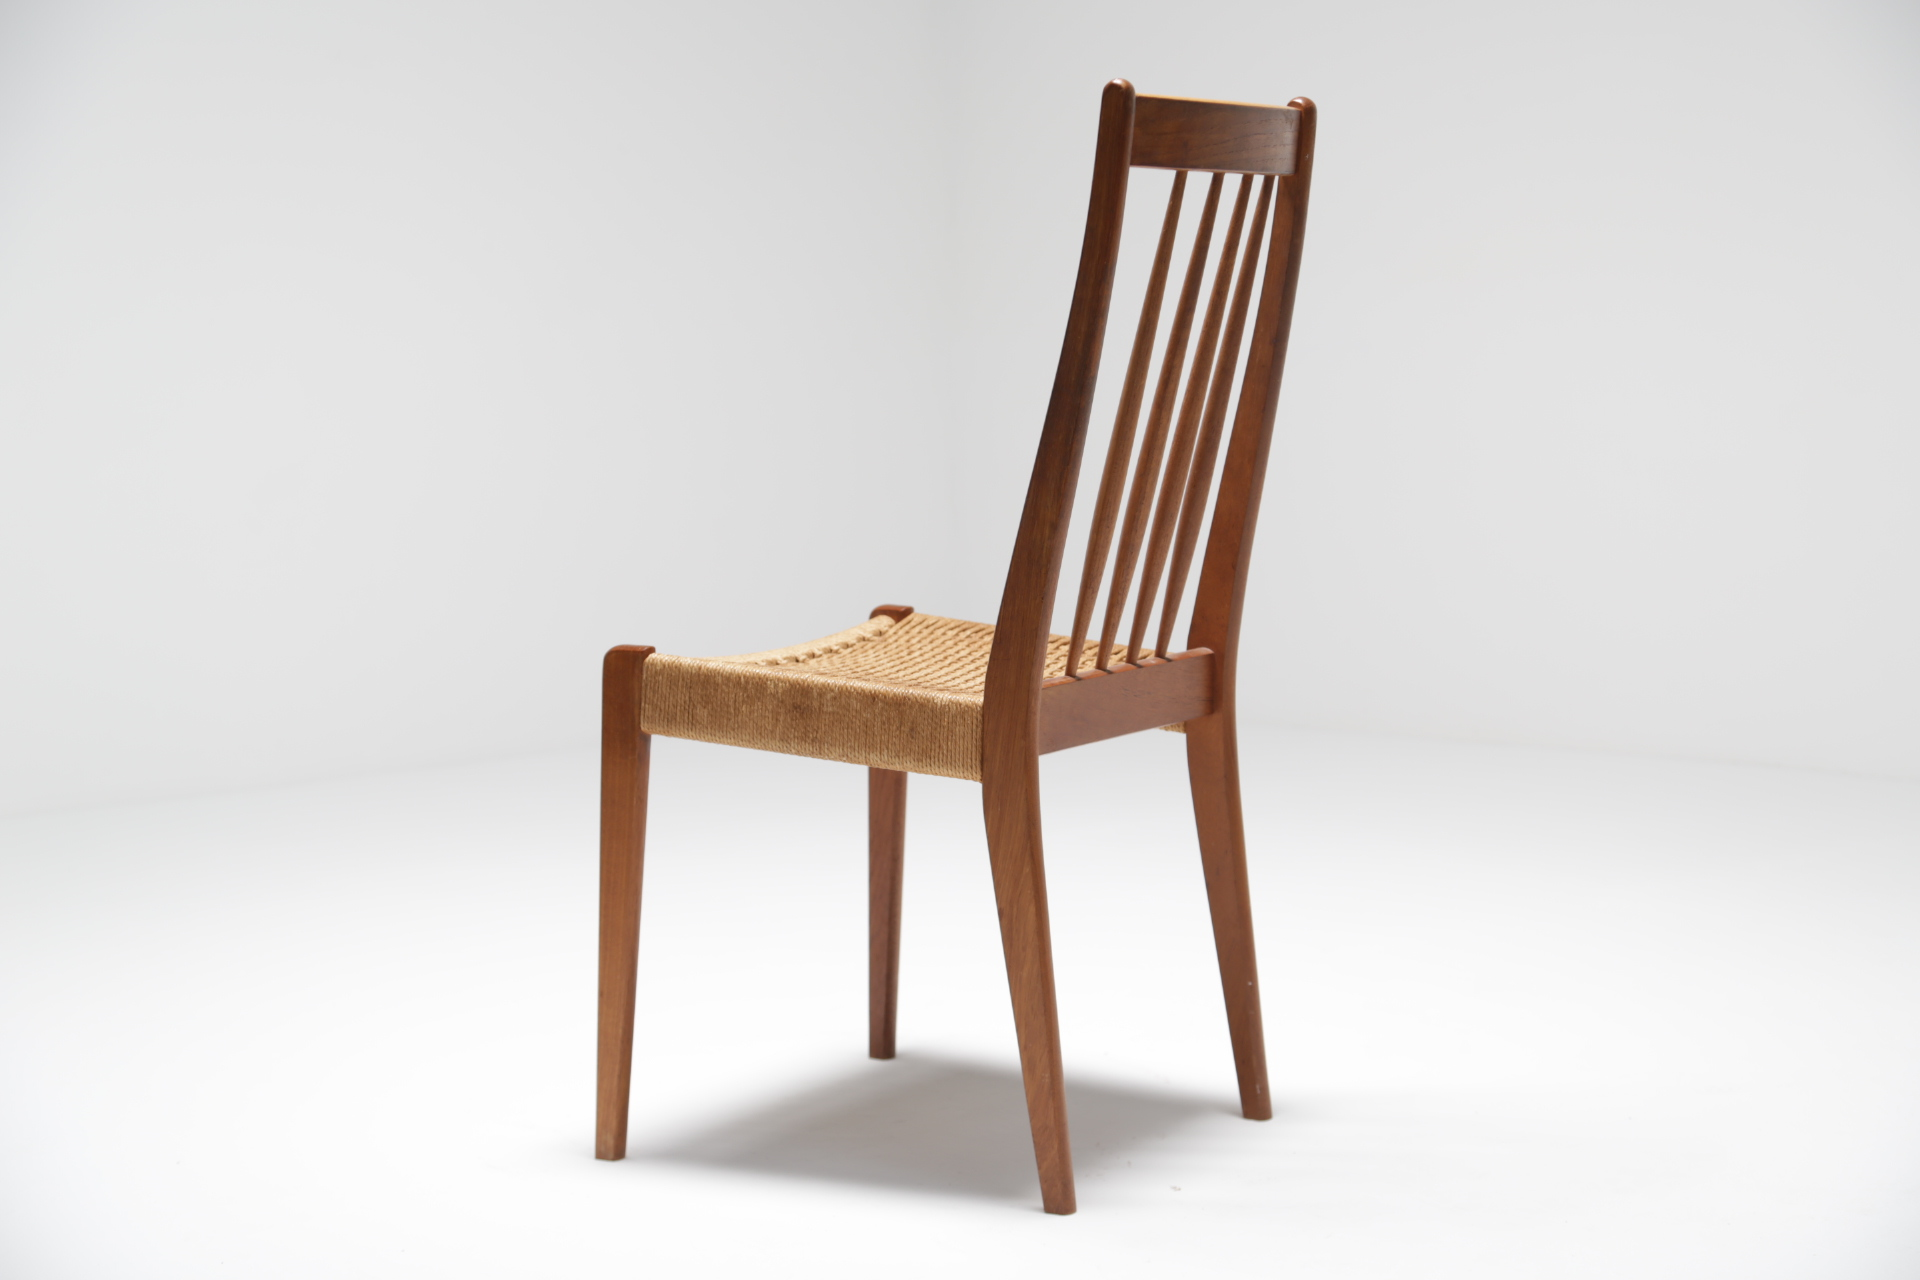 Danish Teak Papercord Dining Chairs The Vintage Hub